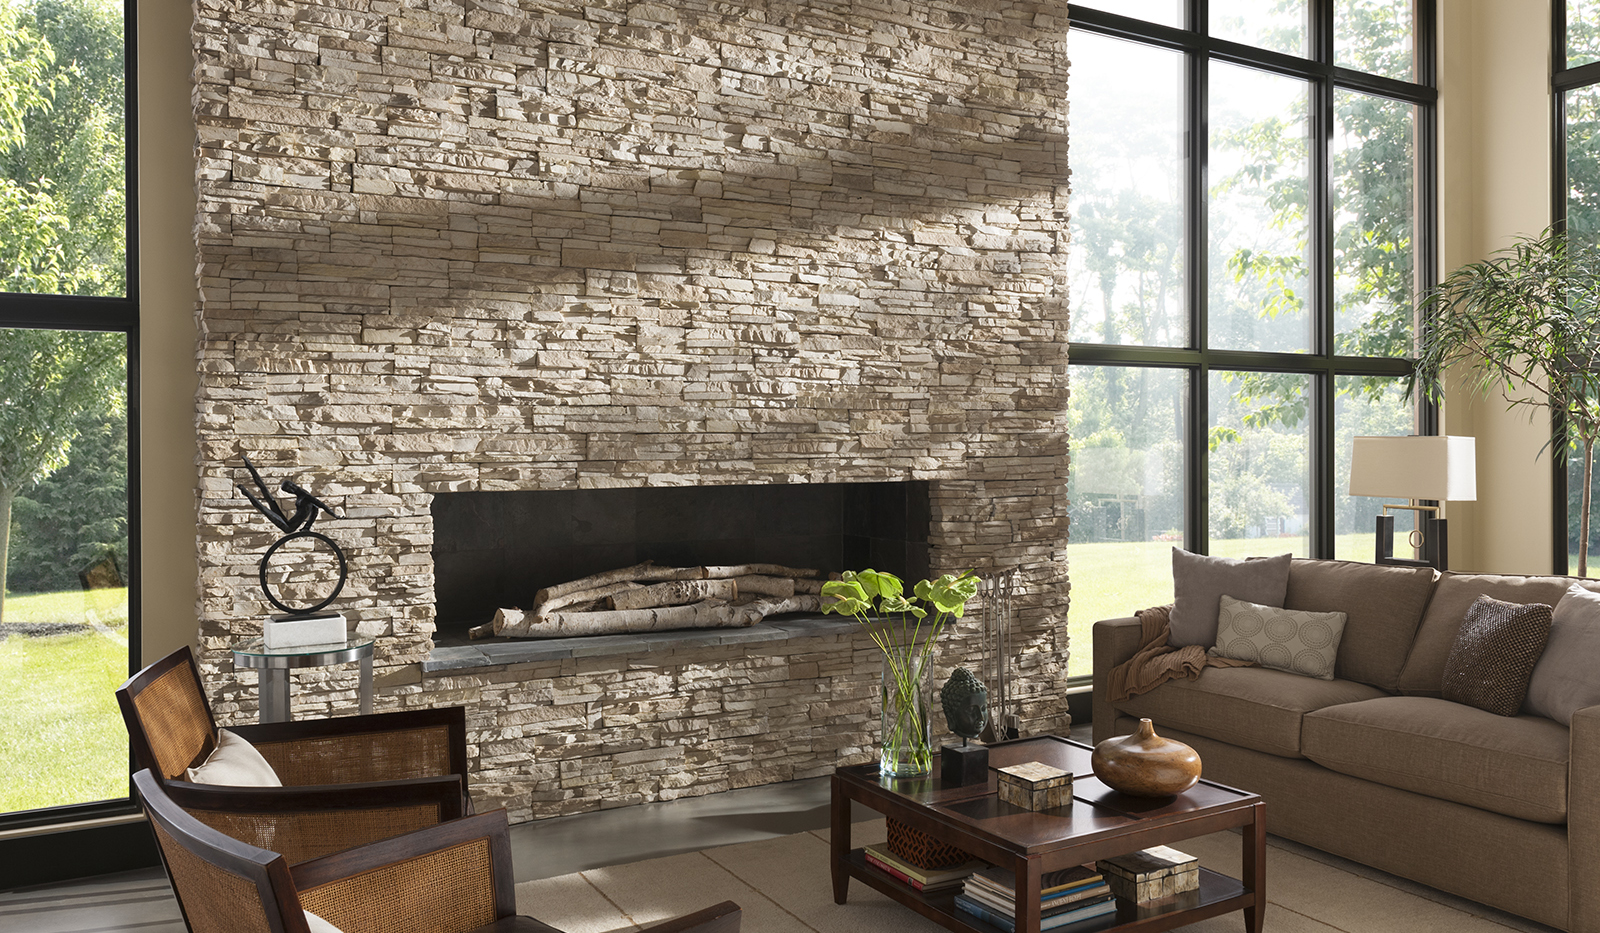 25 interior stone fireplace designs. Black Bedroom Furniture Sets. Home Design Ideas